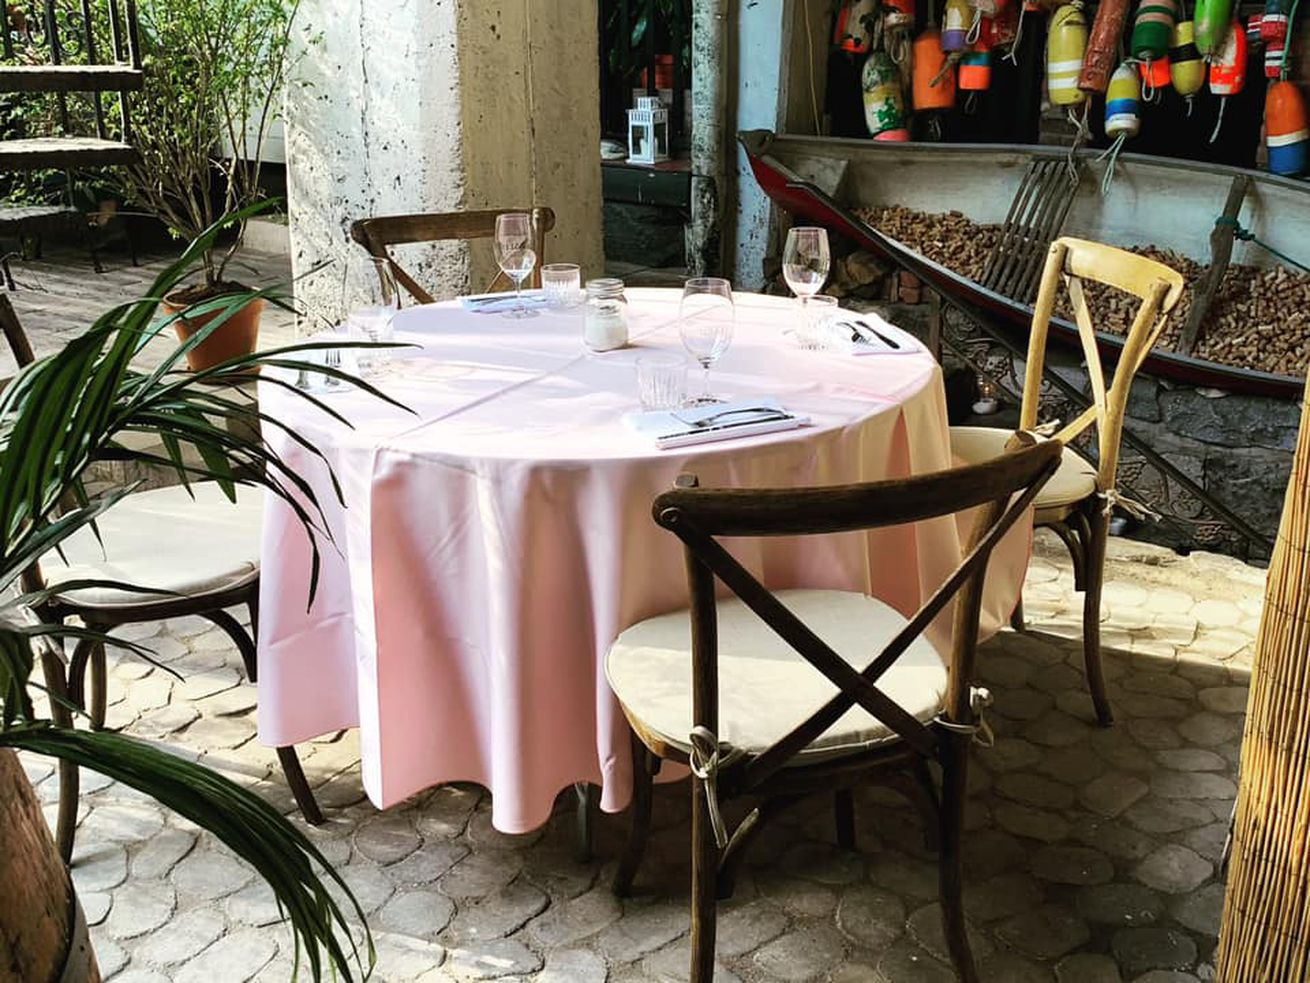 inside of restaurant with pink table cloth